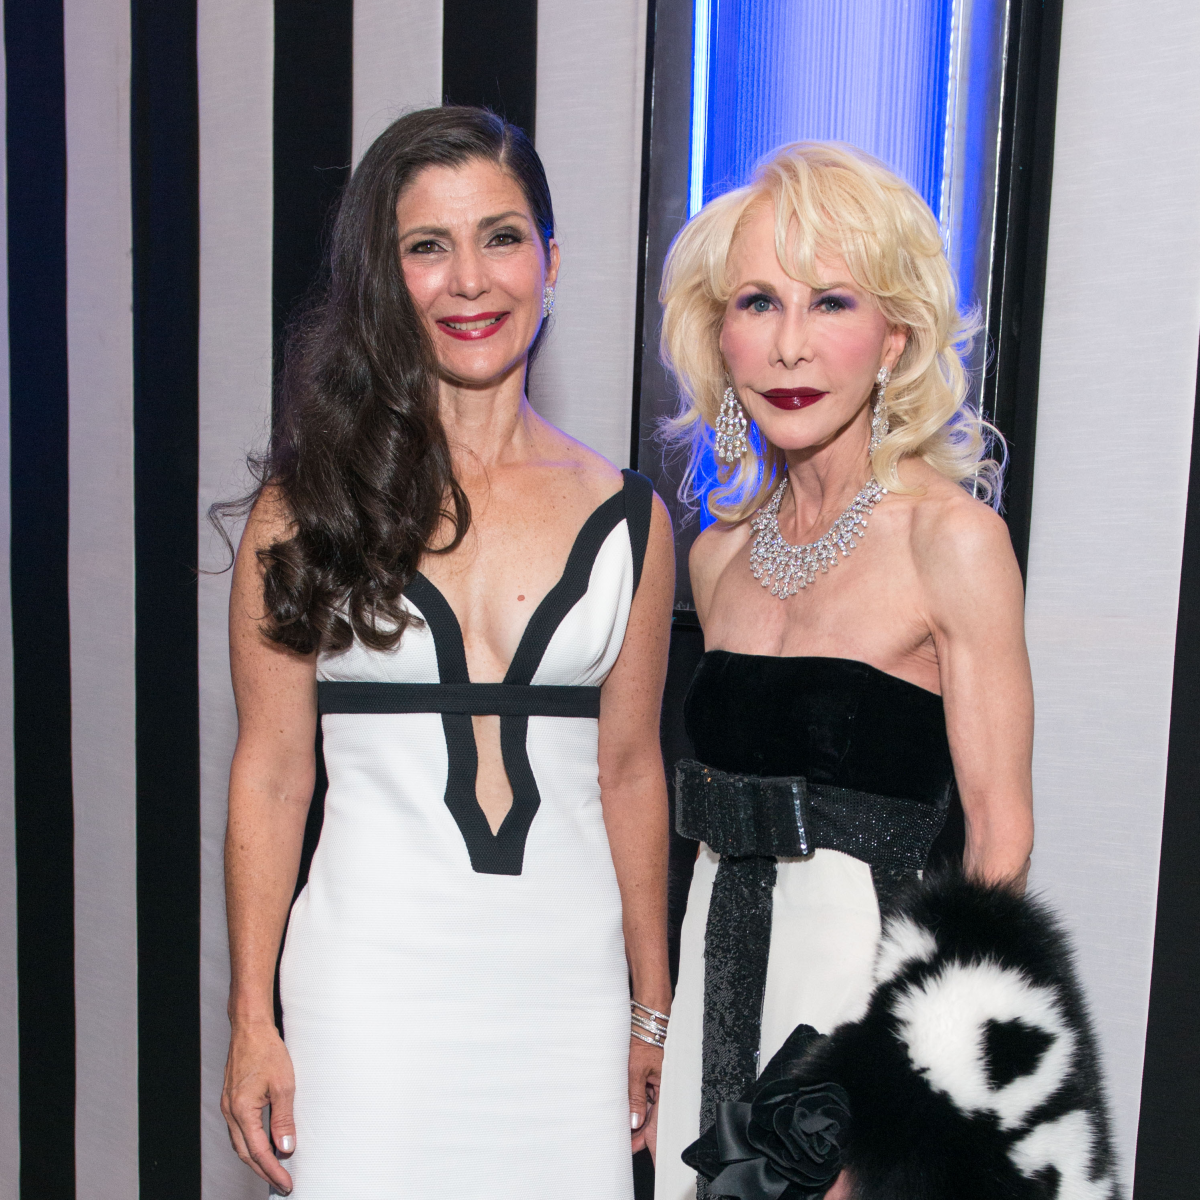 News, Shelby, Museum of Fine Arts gala, Oct. 2015, Cynthia Petrello, Diane Lokey Farb